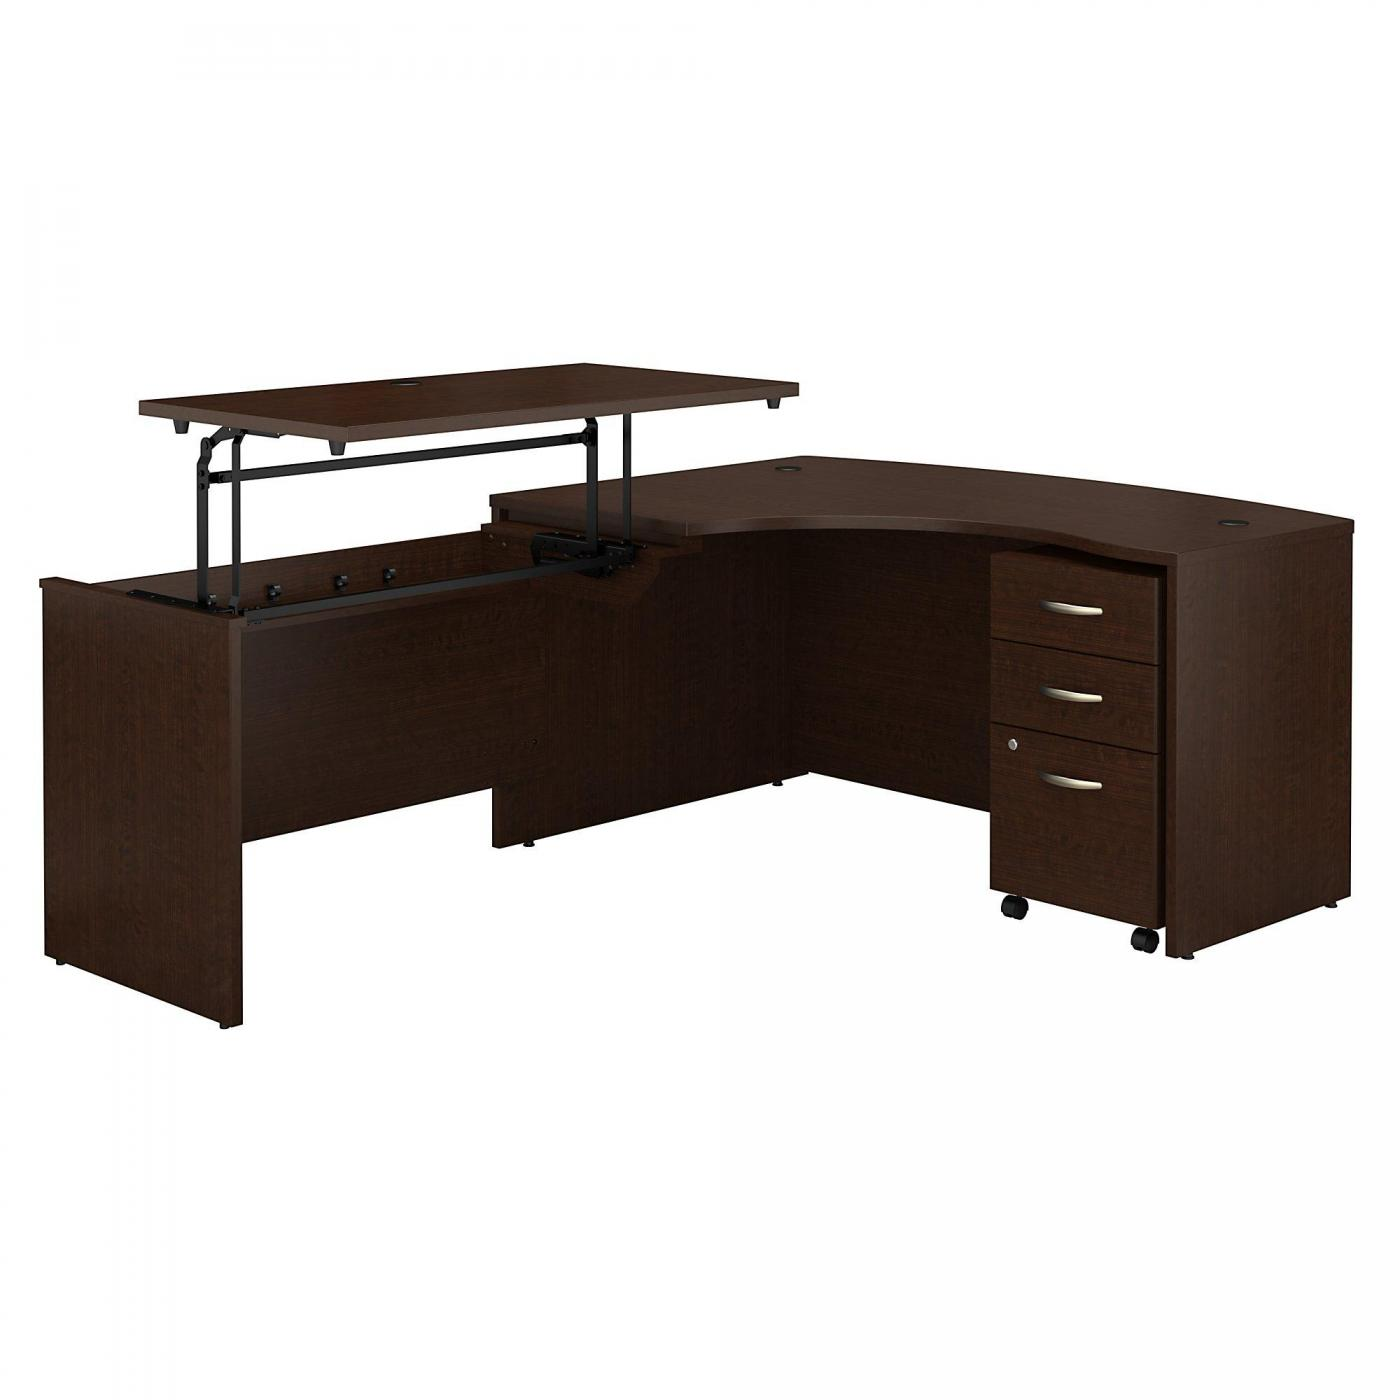 <font color=#c60><b>BUSH BUSINESS FURNITURE SERIES C 60W X 43D RIGHT HAND 3 POSITION SIT TO STAND L SHAPED DESK WITH MOBILE FILE CABINET. FREE SHIPPING. VIDEO:</font></b>